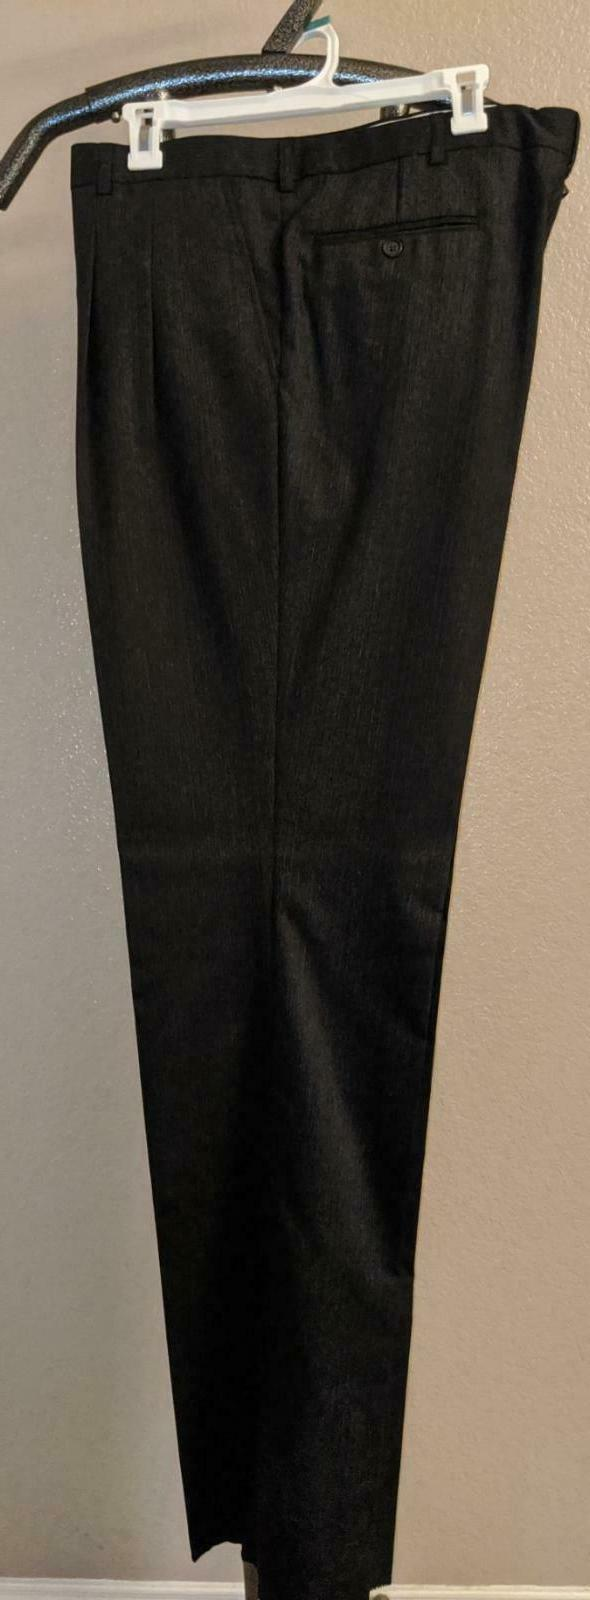 Italy Suit Ravel Worsted 46R/40W$375